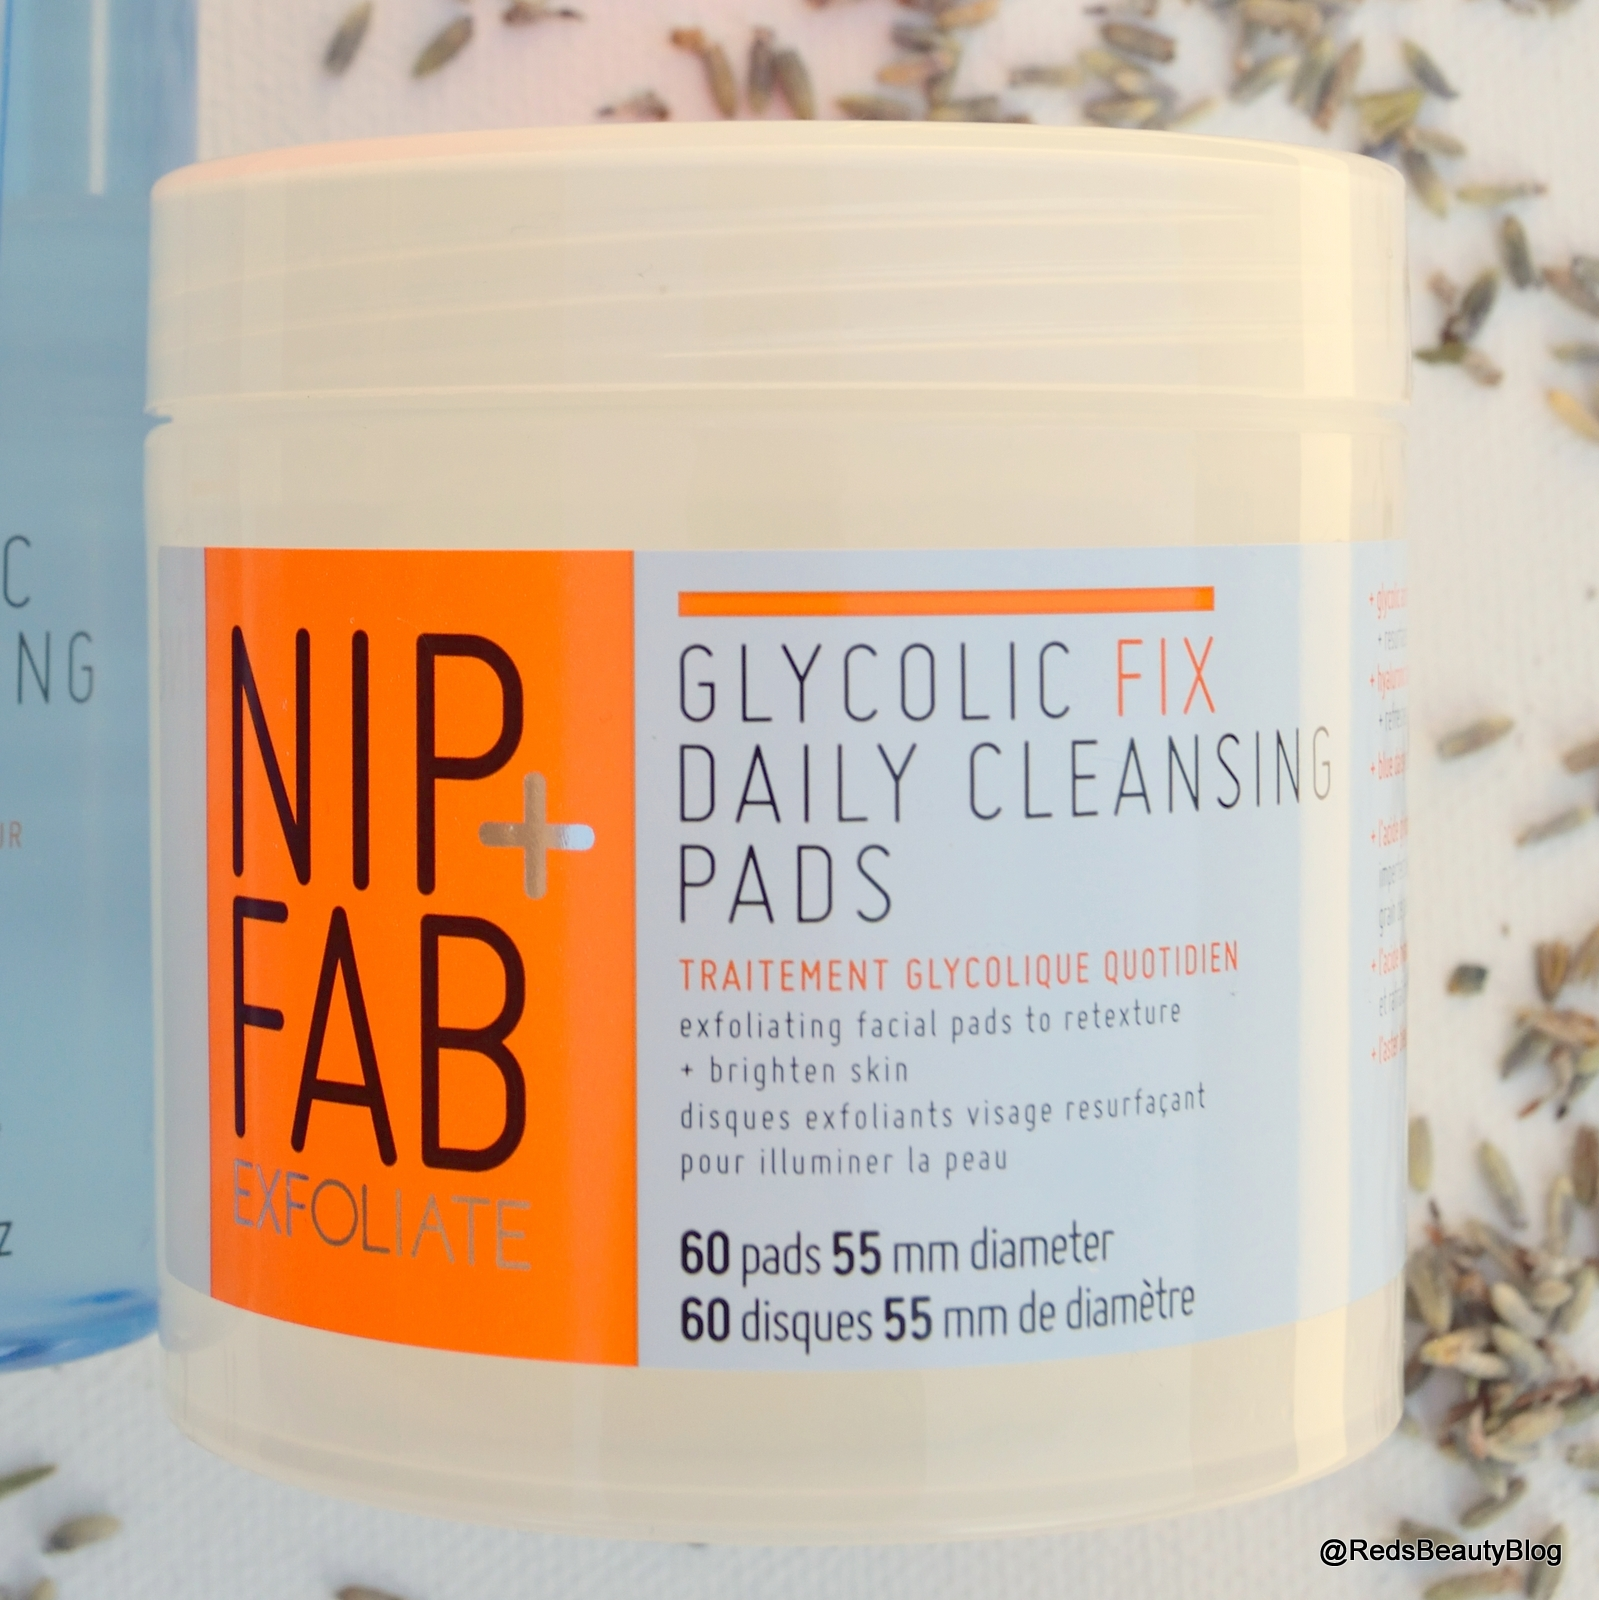 a picture of Nip + Fab Glycolic Fix Daily Cleansing Pads